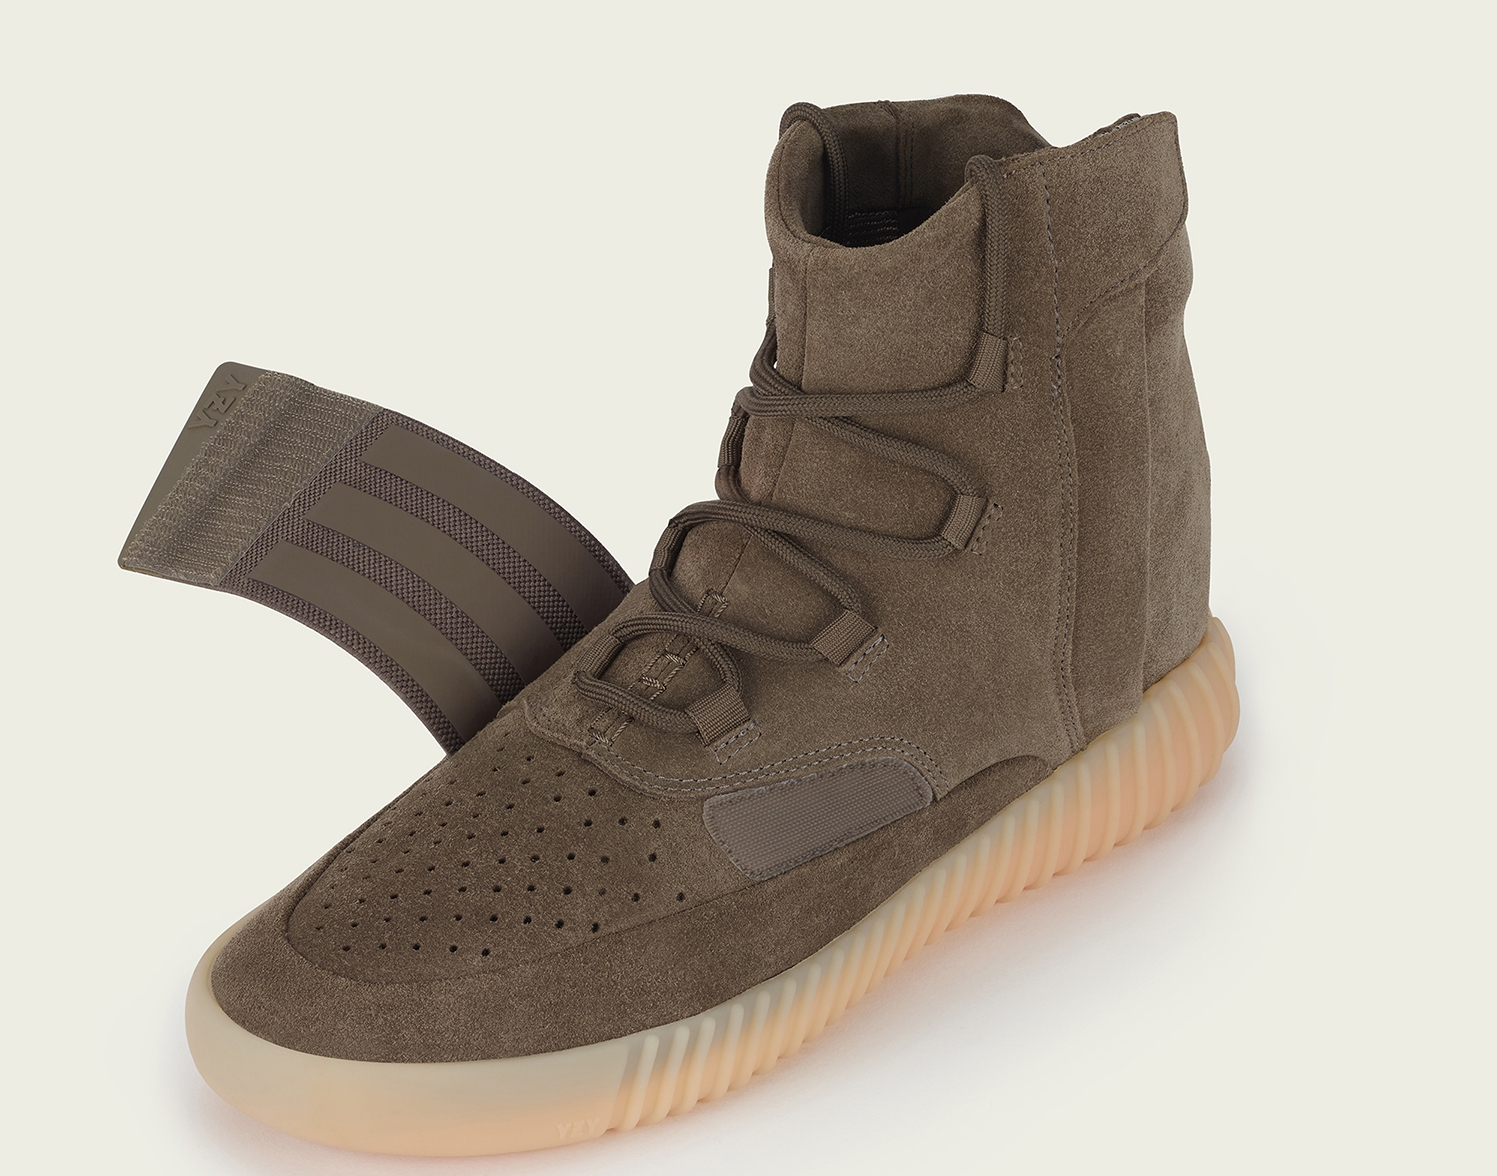 Adidas Yeezy 750 Boost Chocolate Release Date Sole Collector